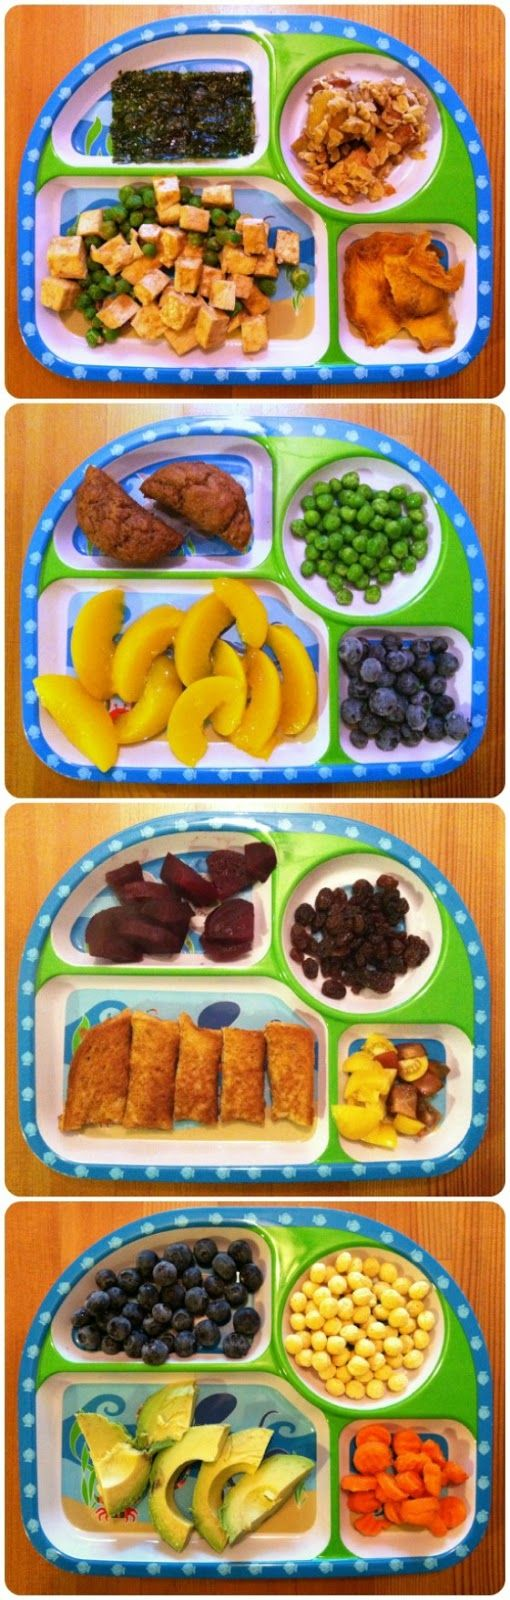 Vegan Mother Hubbard Toddler Meals #7  sc 1 st  Pinterest & 27 best Toddler (Children) Food images on Pinterest | Cooking food ...